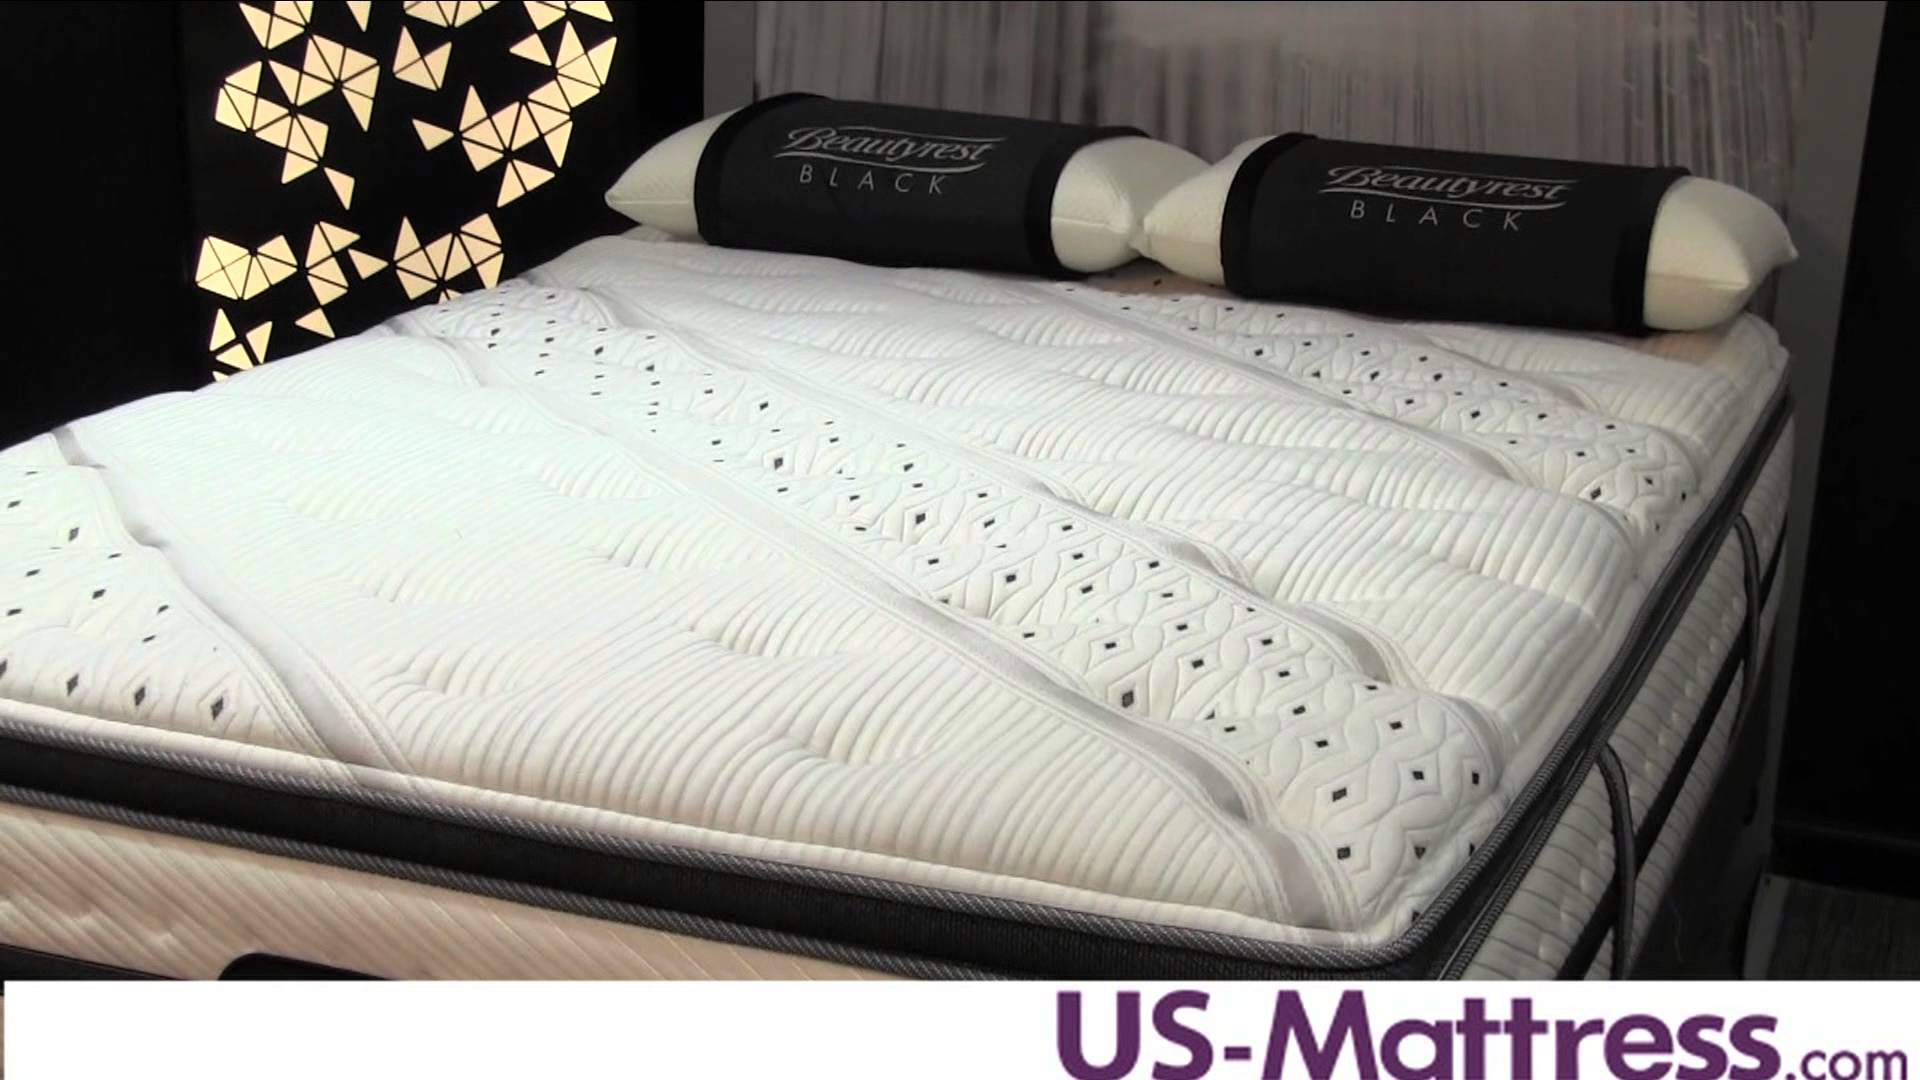 Beautyrest Simmons Mattress Reviews | Simmons Beautyrest Mattress | Simmons Bedding Company